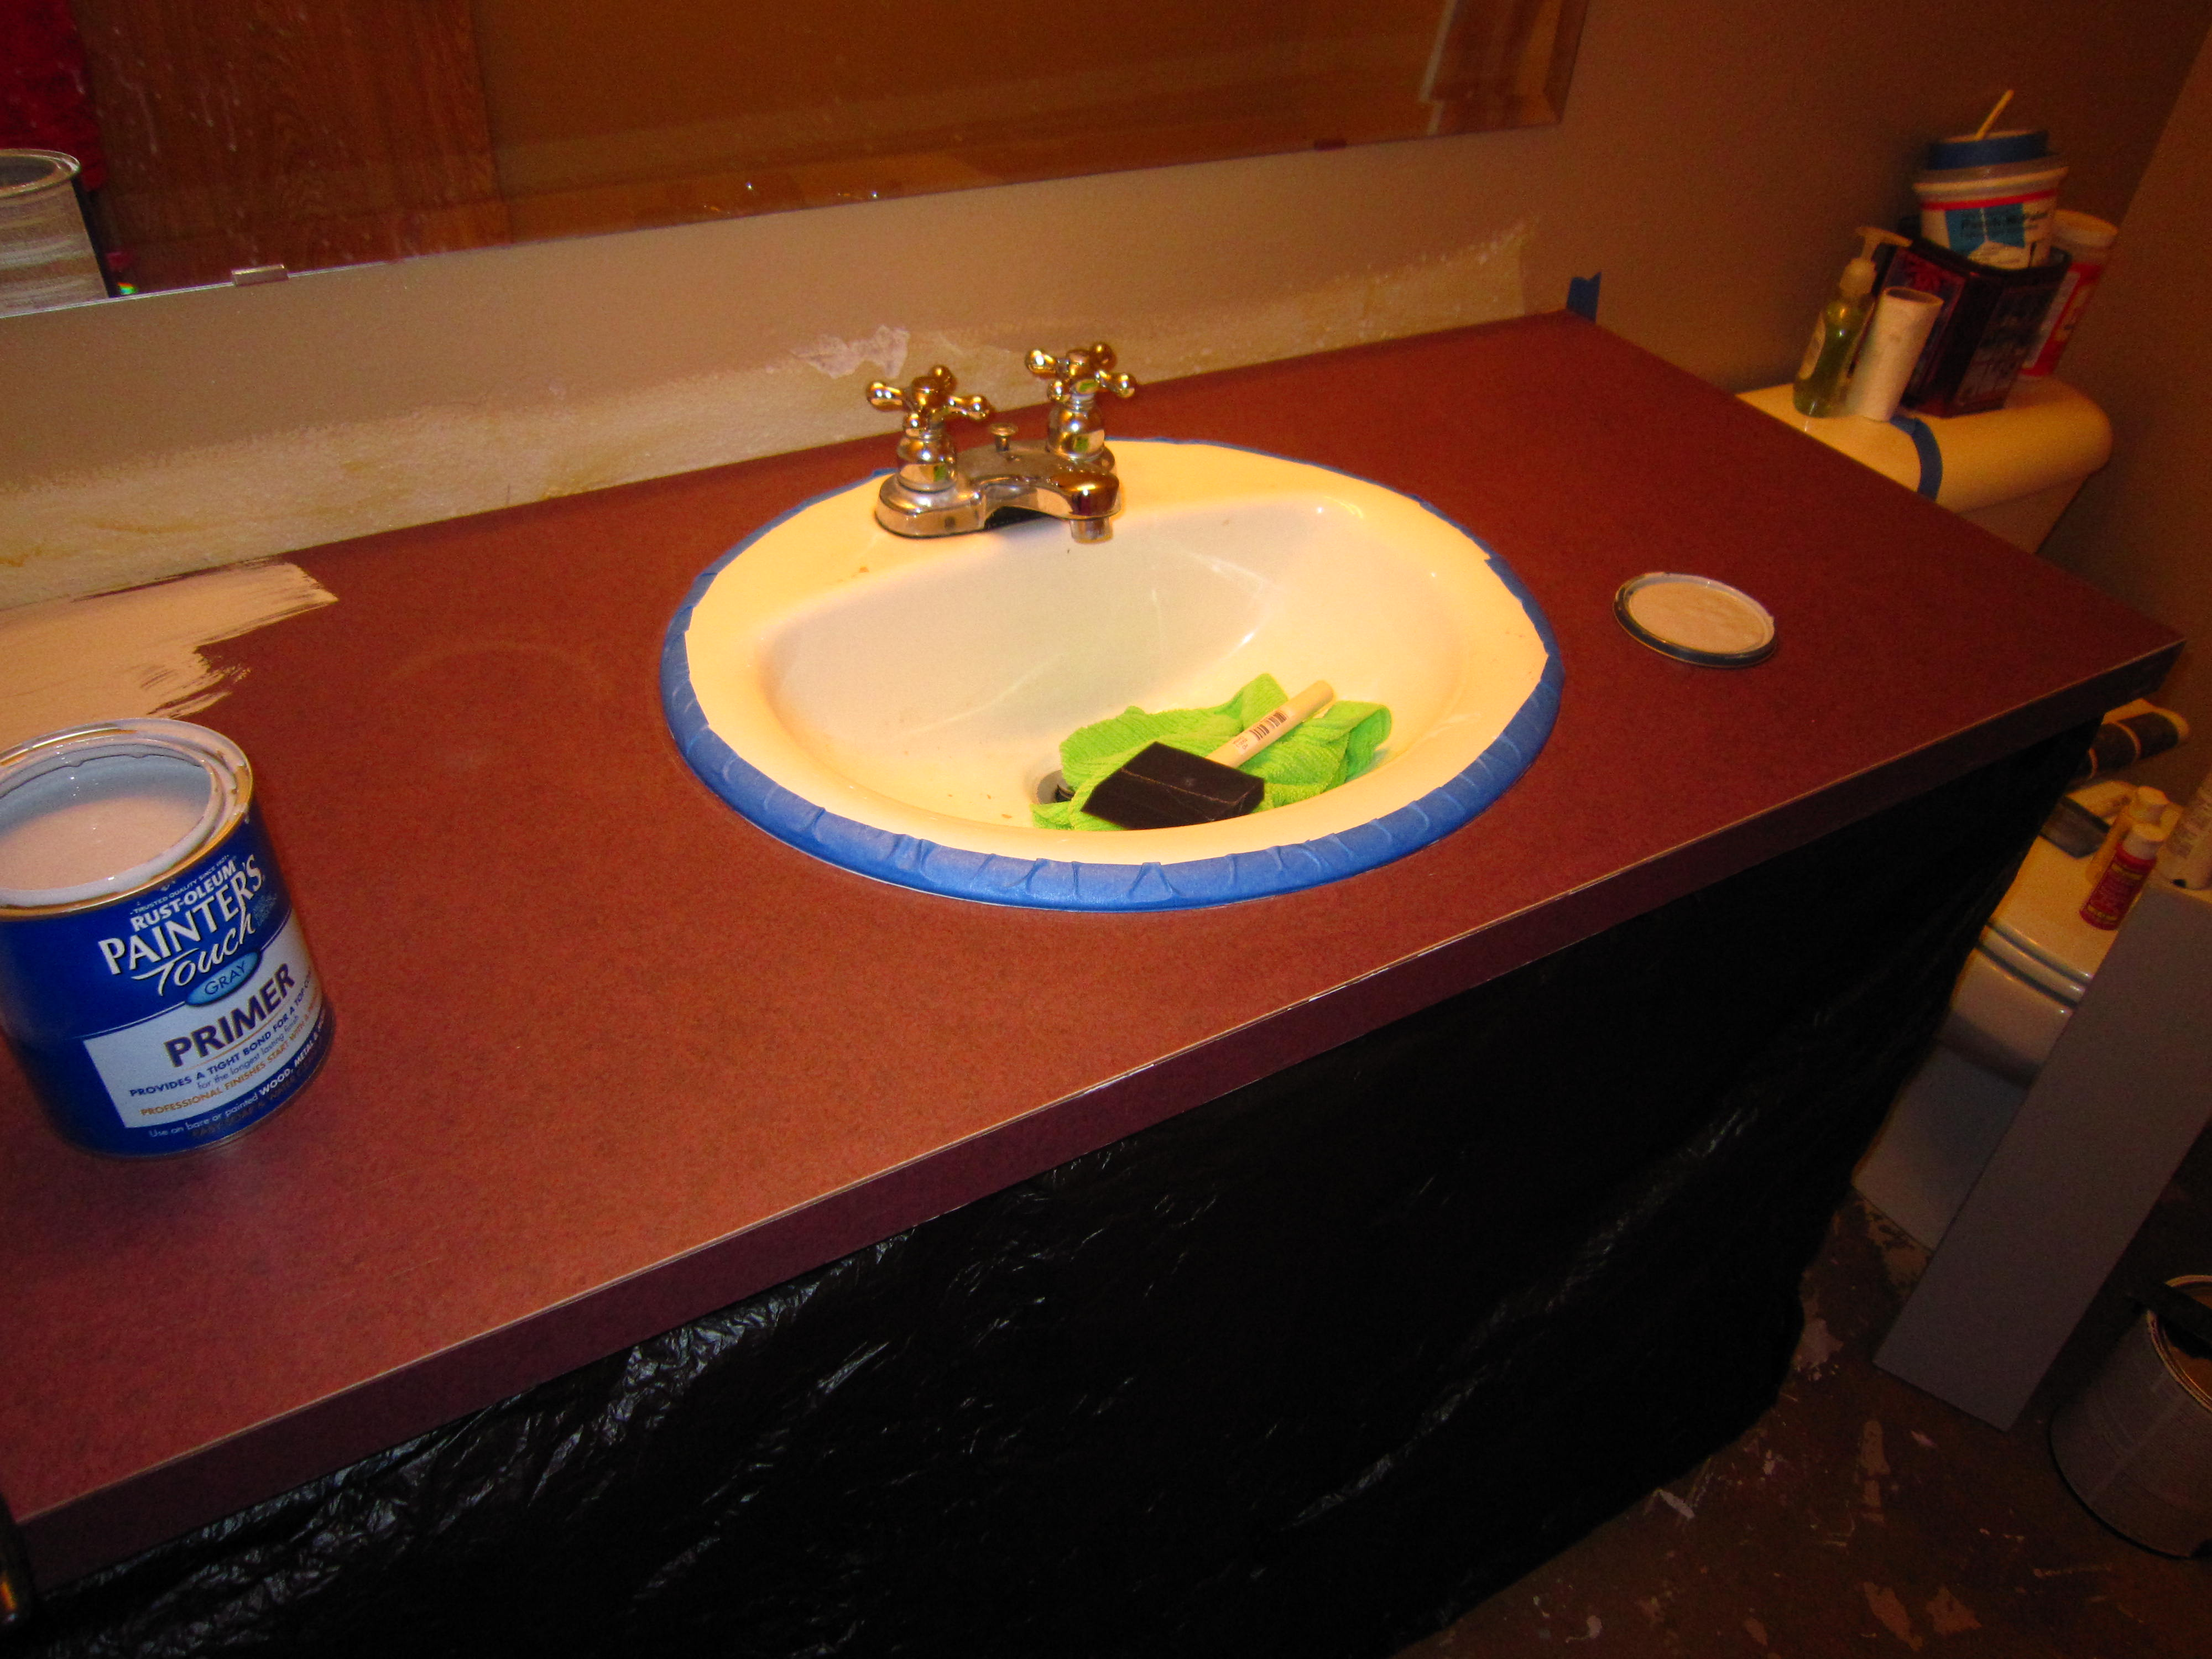 How To Cut Sink In Laminate Countertop Diy Faux Granite Countertop Without A Kit For Under 60